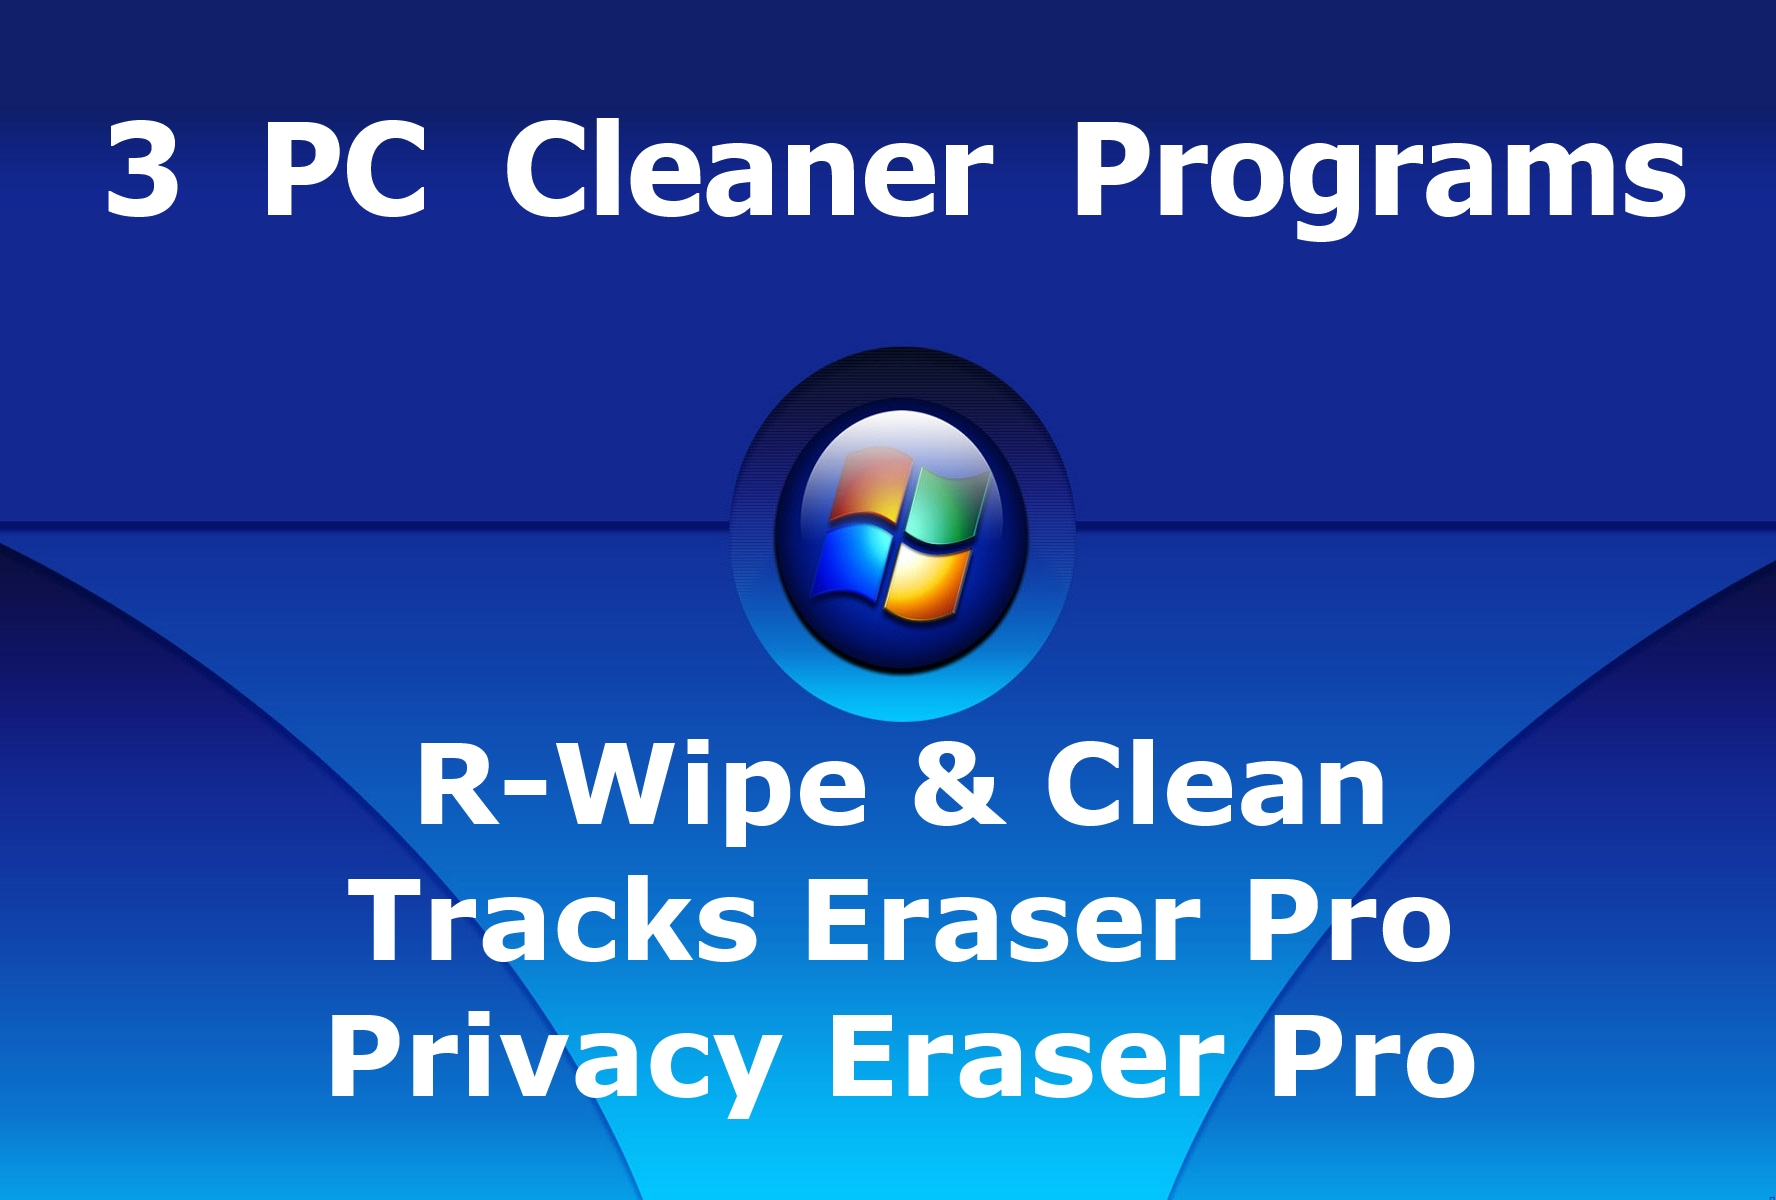 Give 3 PC Windows Cleaner Eraser Programs to Clean Computer Cache Browser History